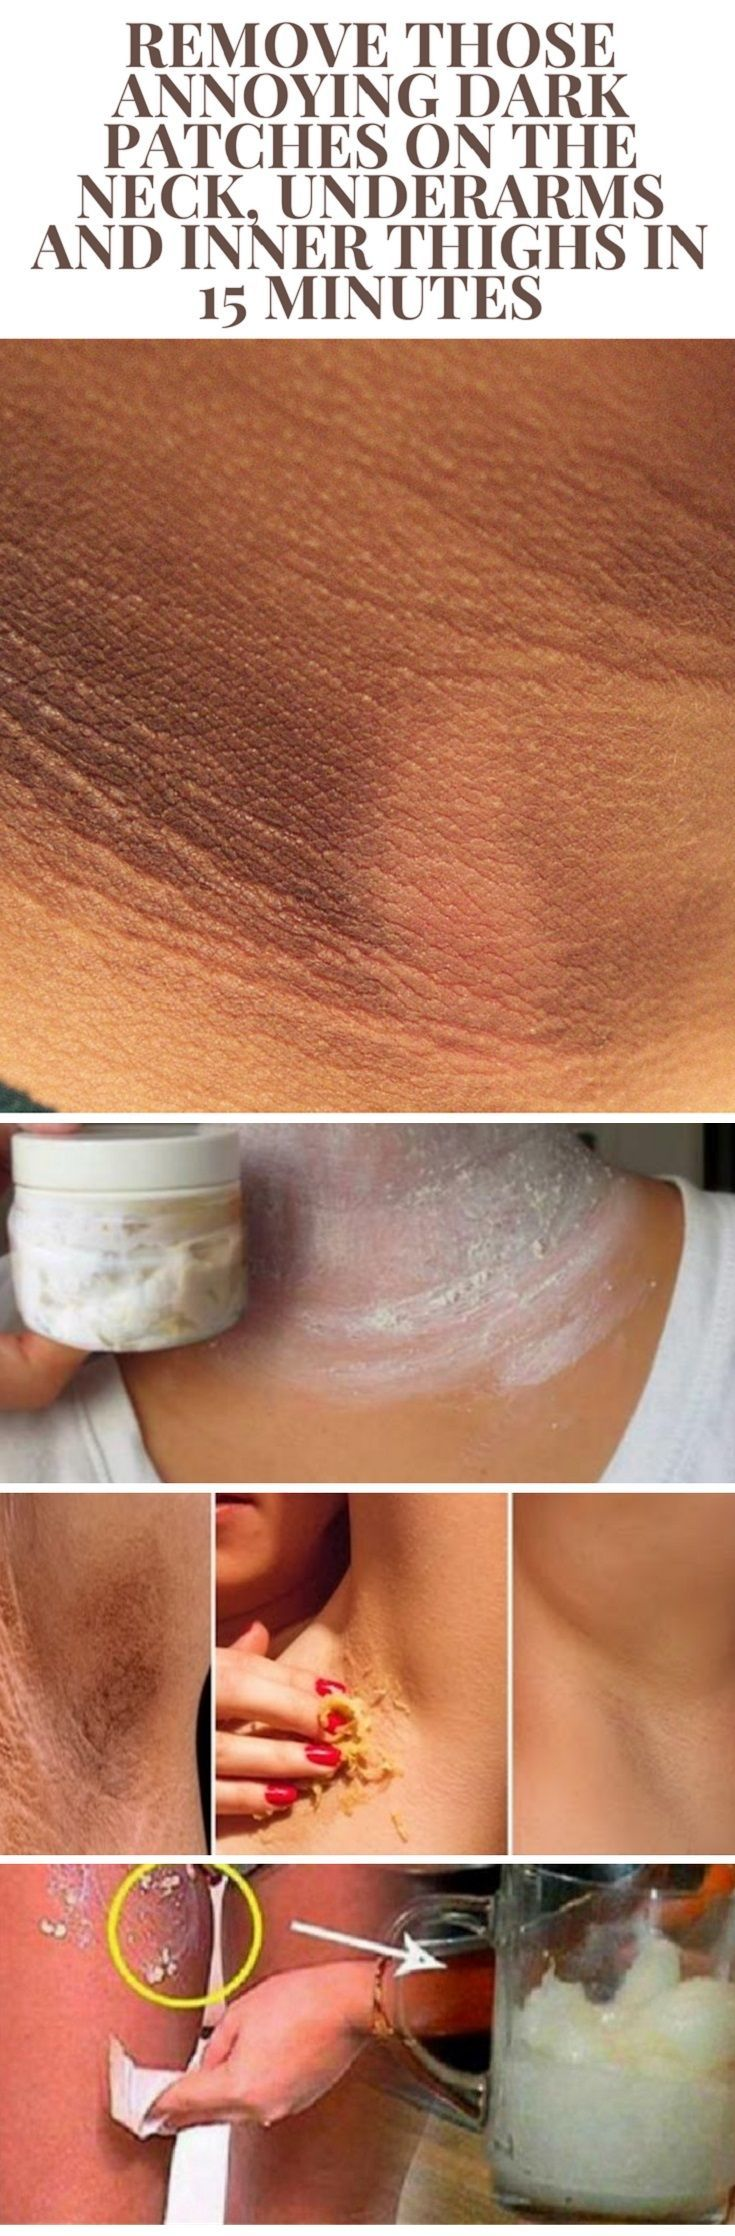 Remove Those Annoying Dark Patches on The Neck  Underarms and Inner Thighs in 15 Minutes Dark patches usually appear on the neck armpits and inner thighs due to waxing shaving using deodorants and even sun exposure. Moreover people suffering from obesity diabetes or gastrointestinal or genitourinary cancers usually have dark spots of these areas on the skin such as people who undergoing hormonal treatments. People spend lots of money on